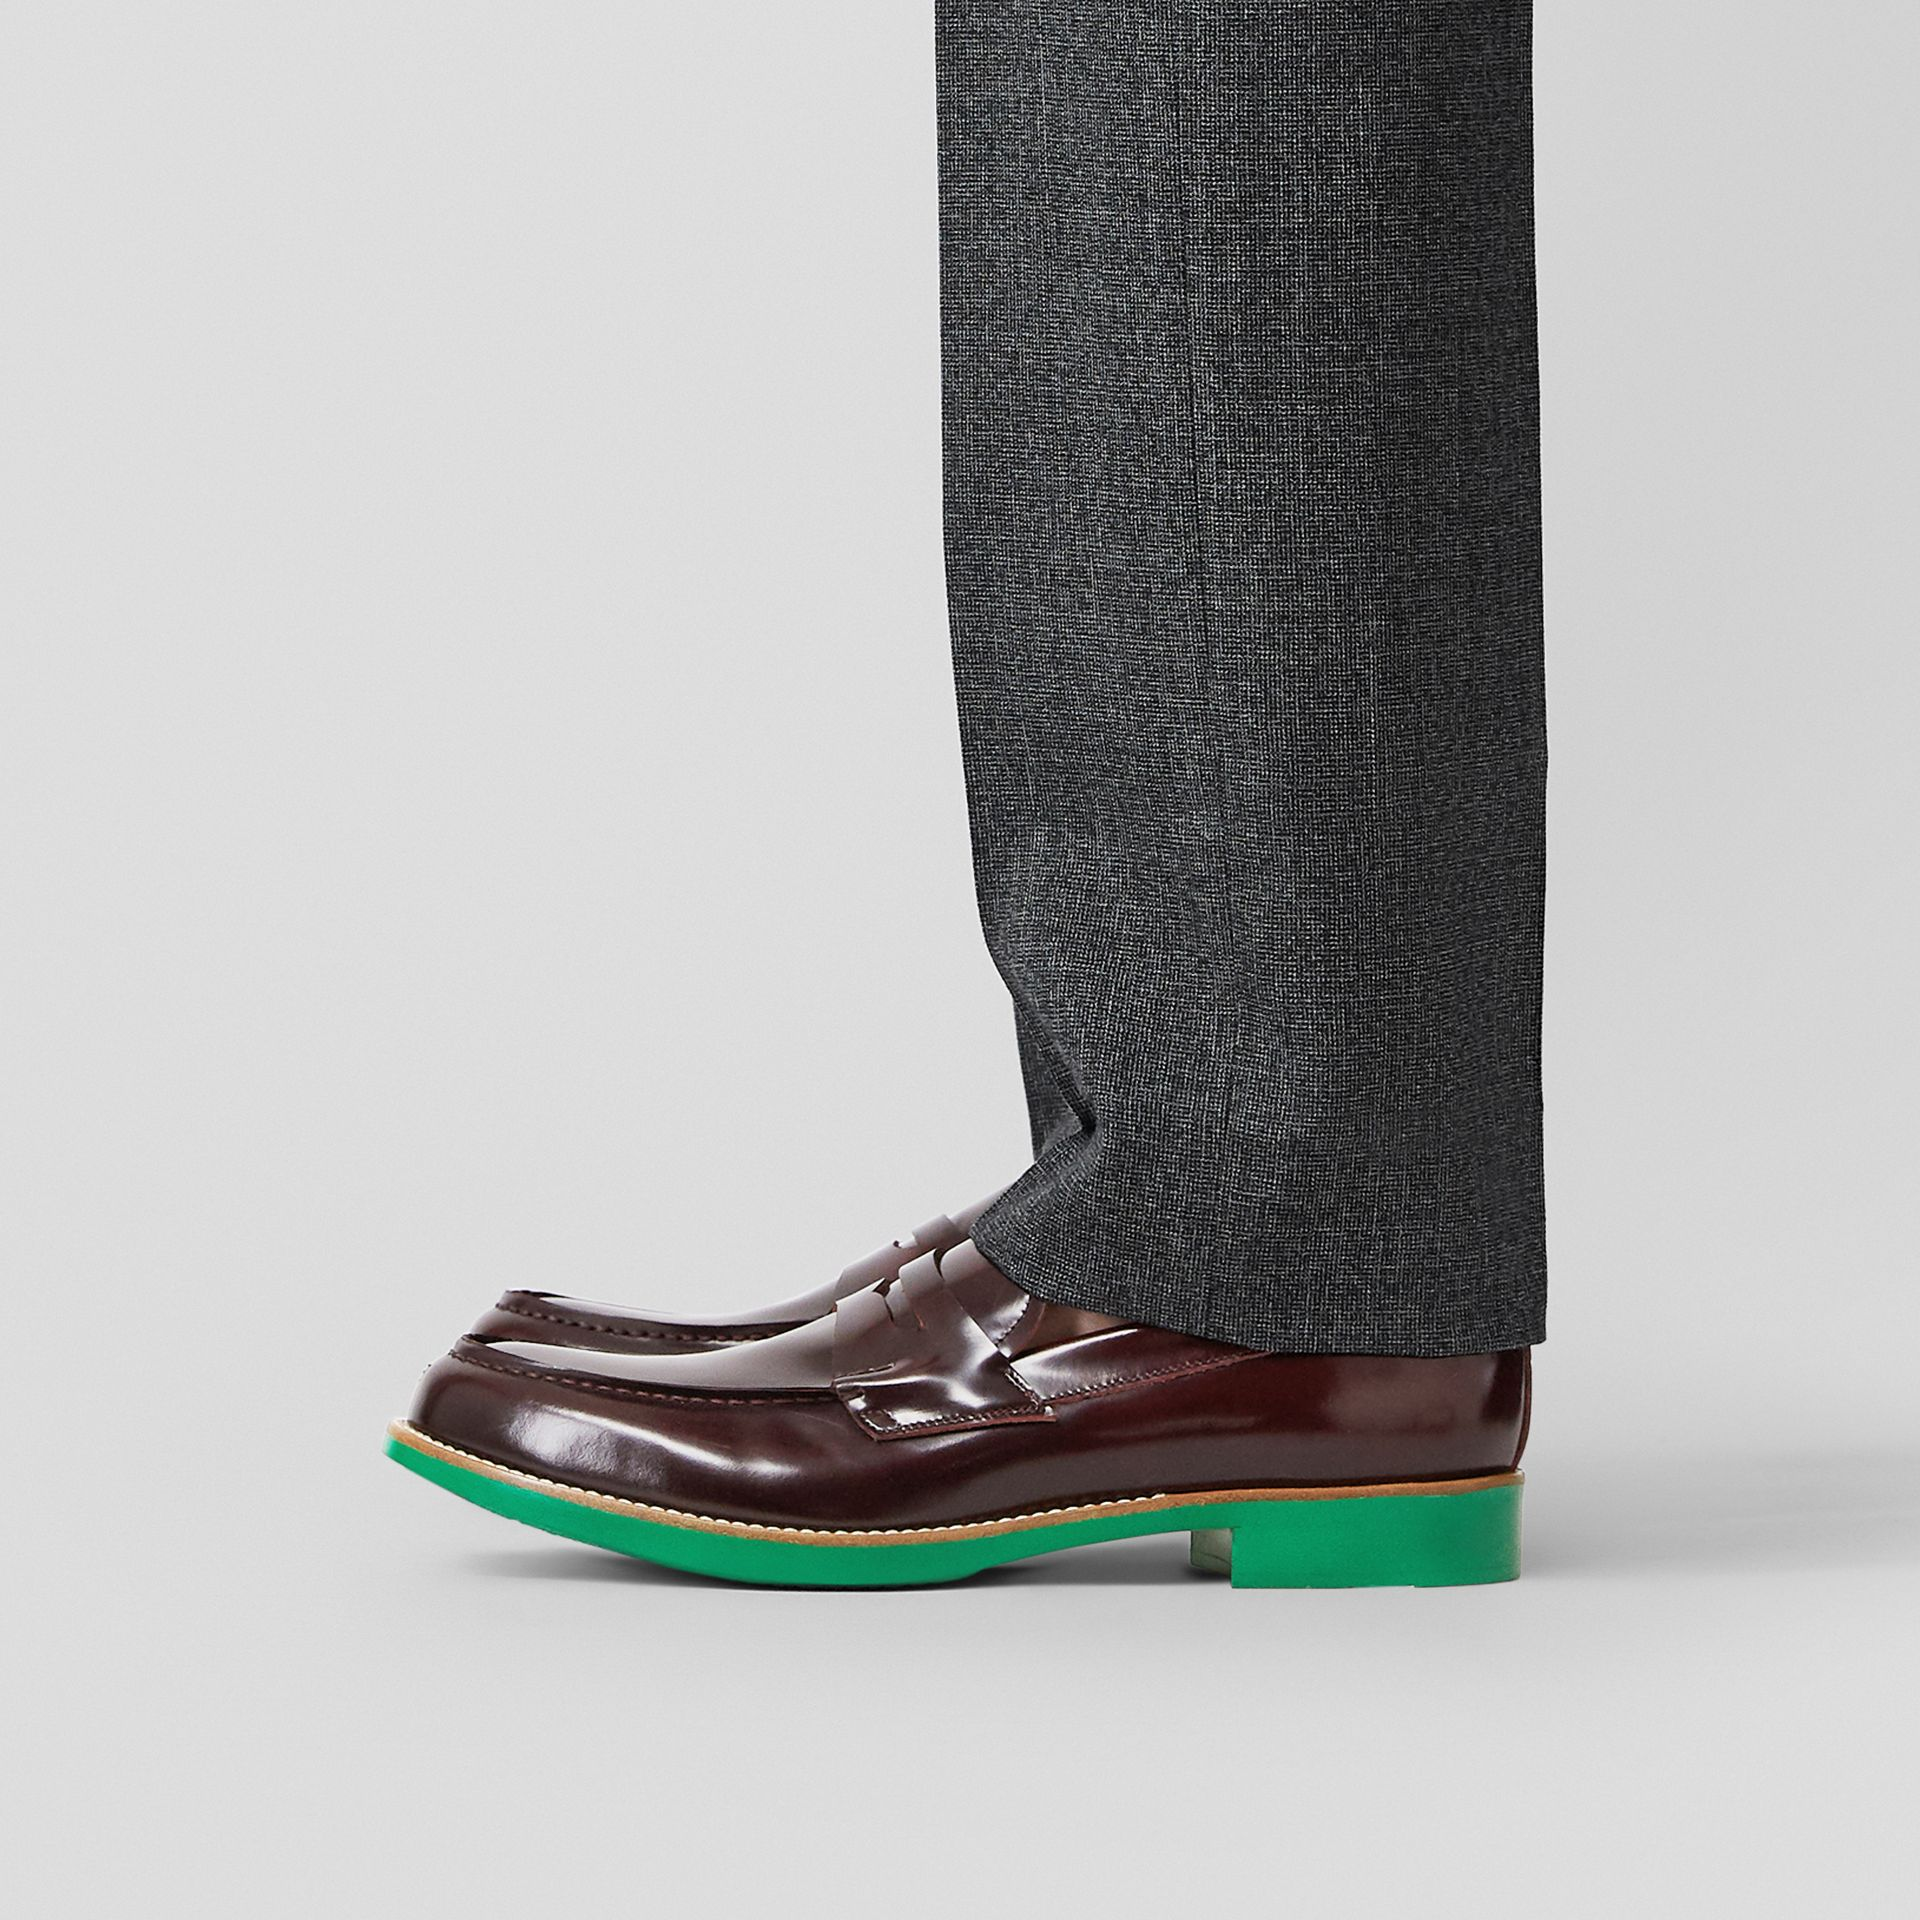 D-ring Detail Contrast Sole Leather Loafers in Bordeaux/green - Men | Burberry United Kingdom - gallery image 2